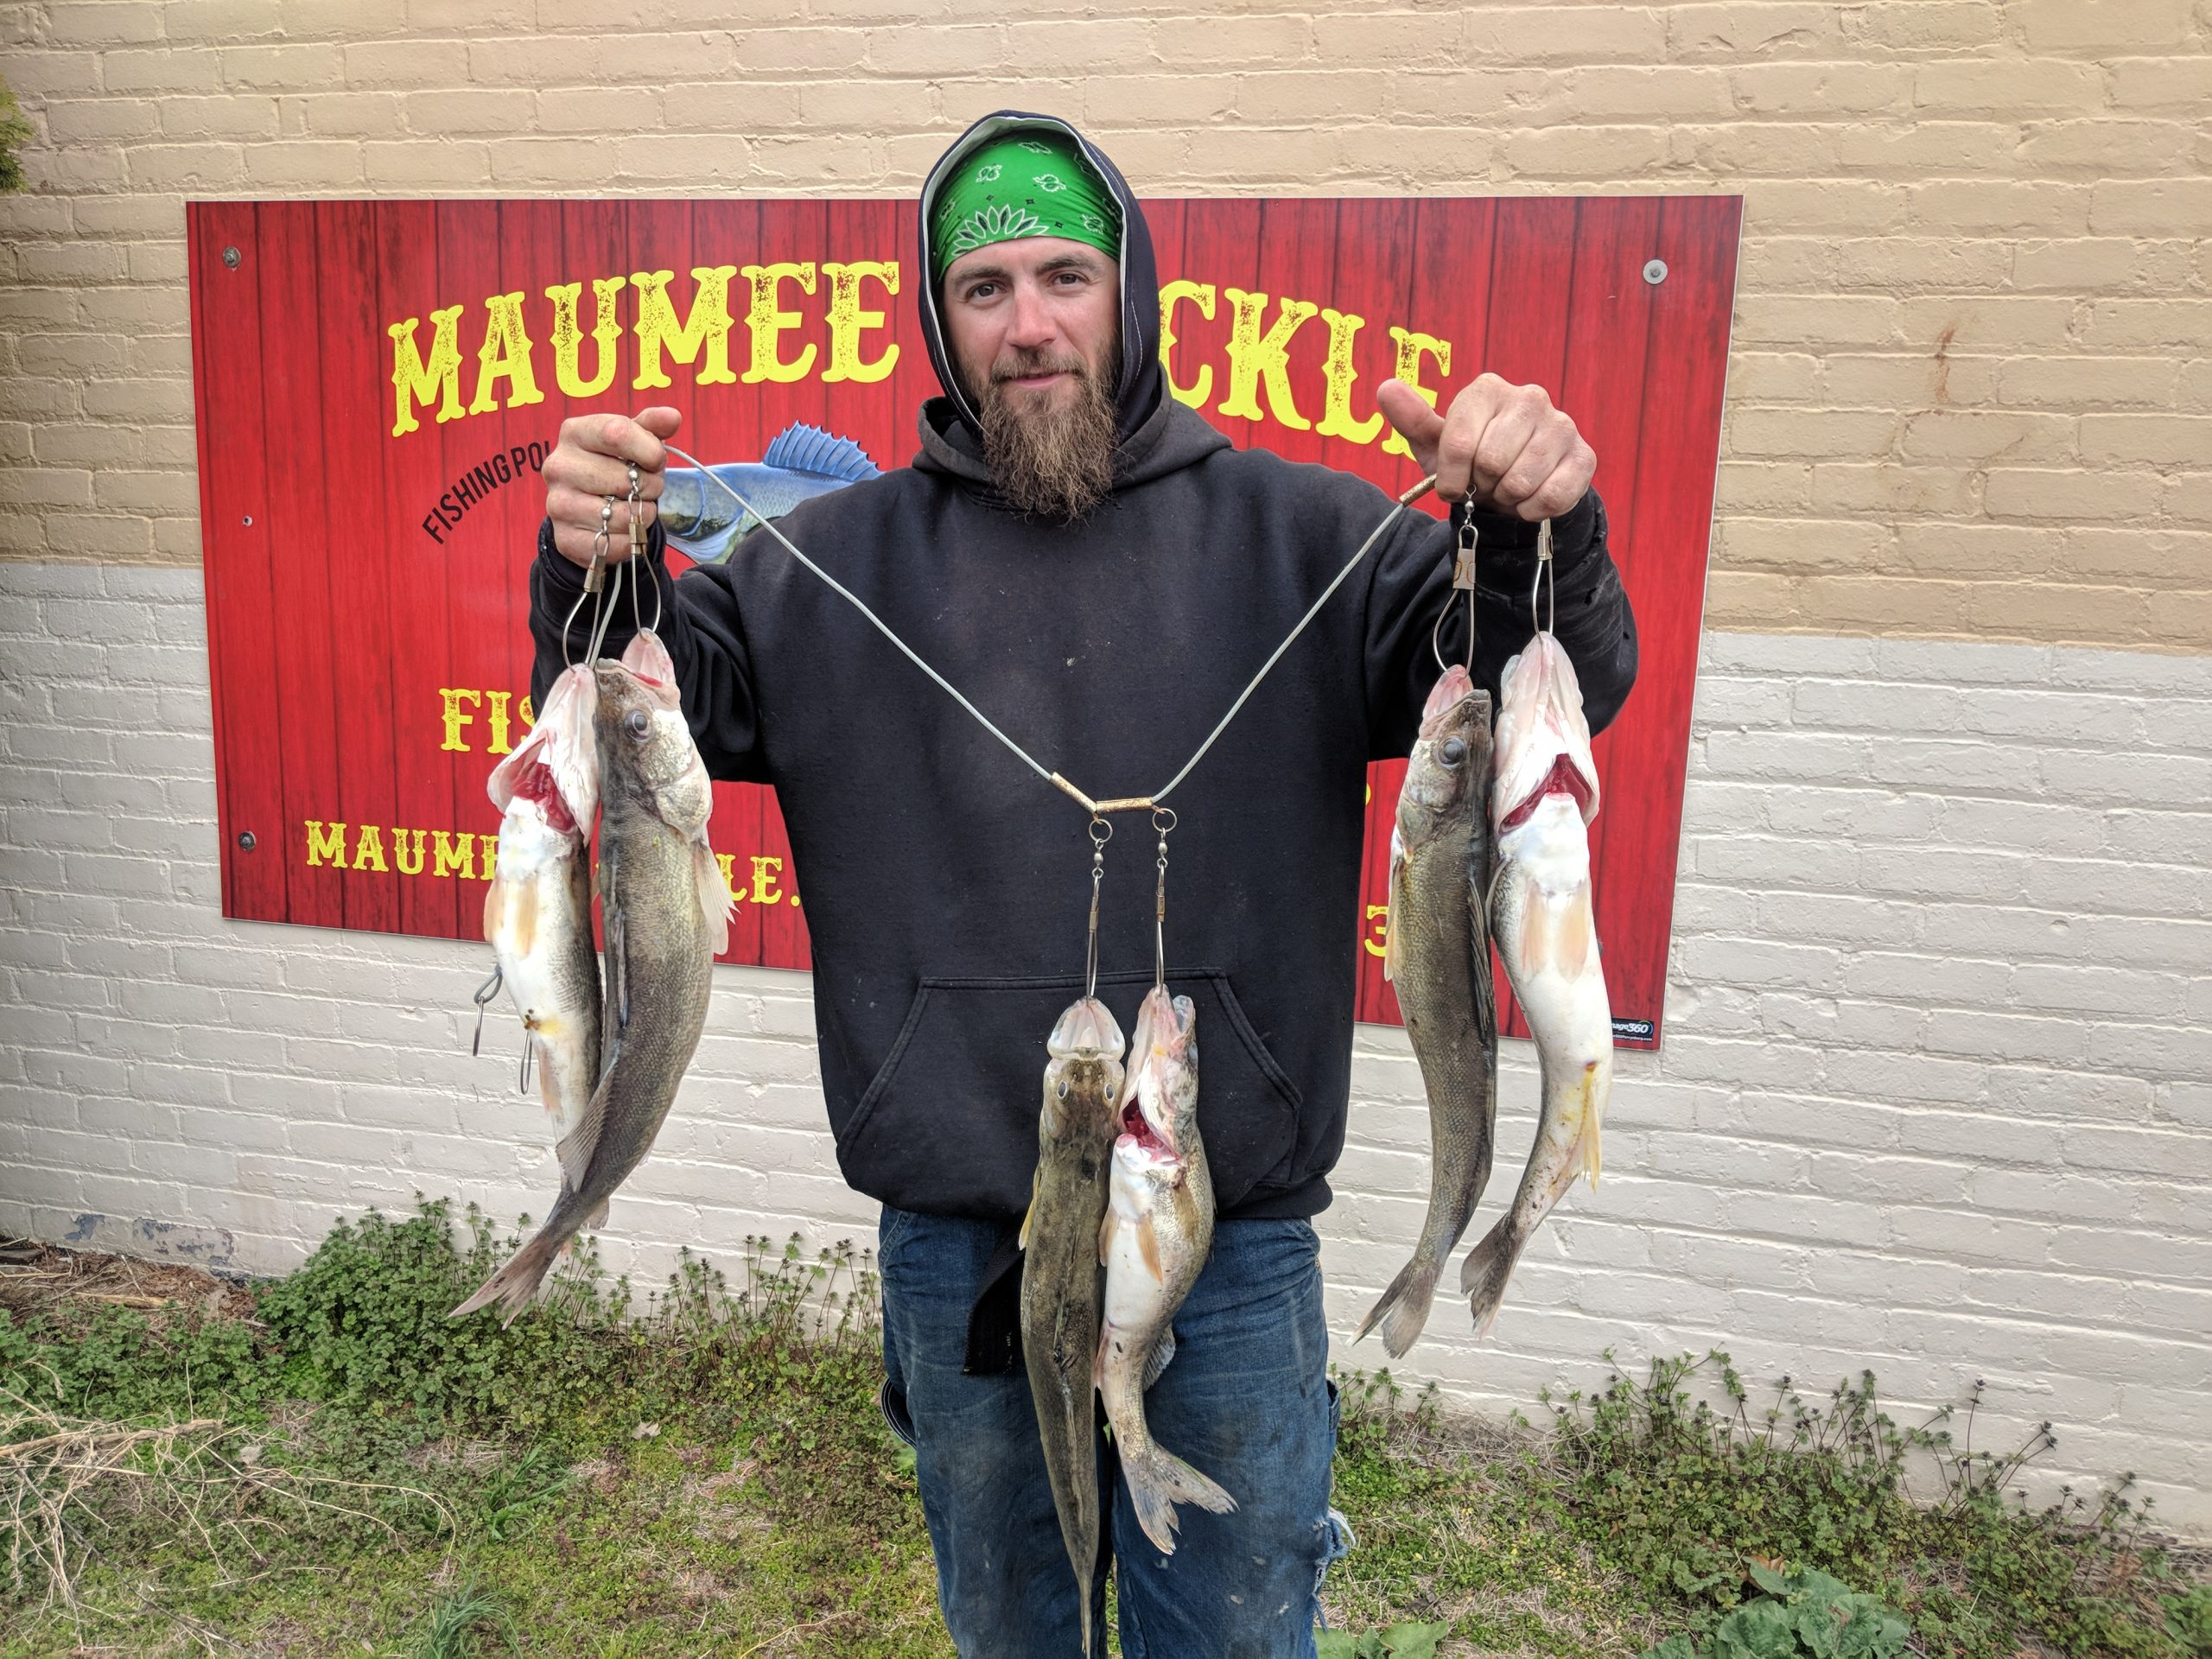 Maumee River report 26 April 2020